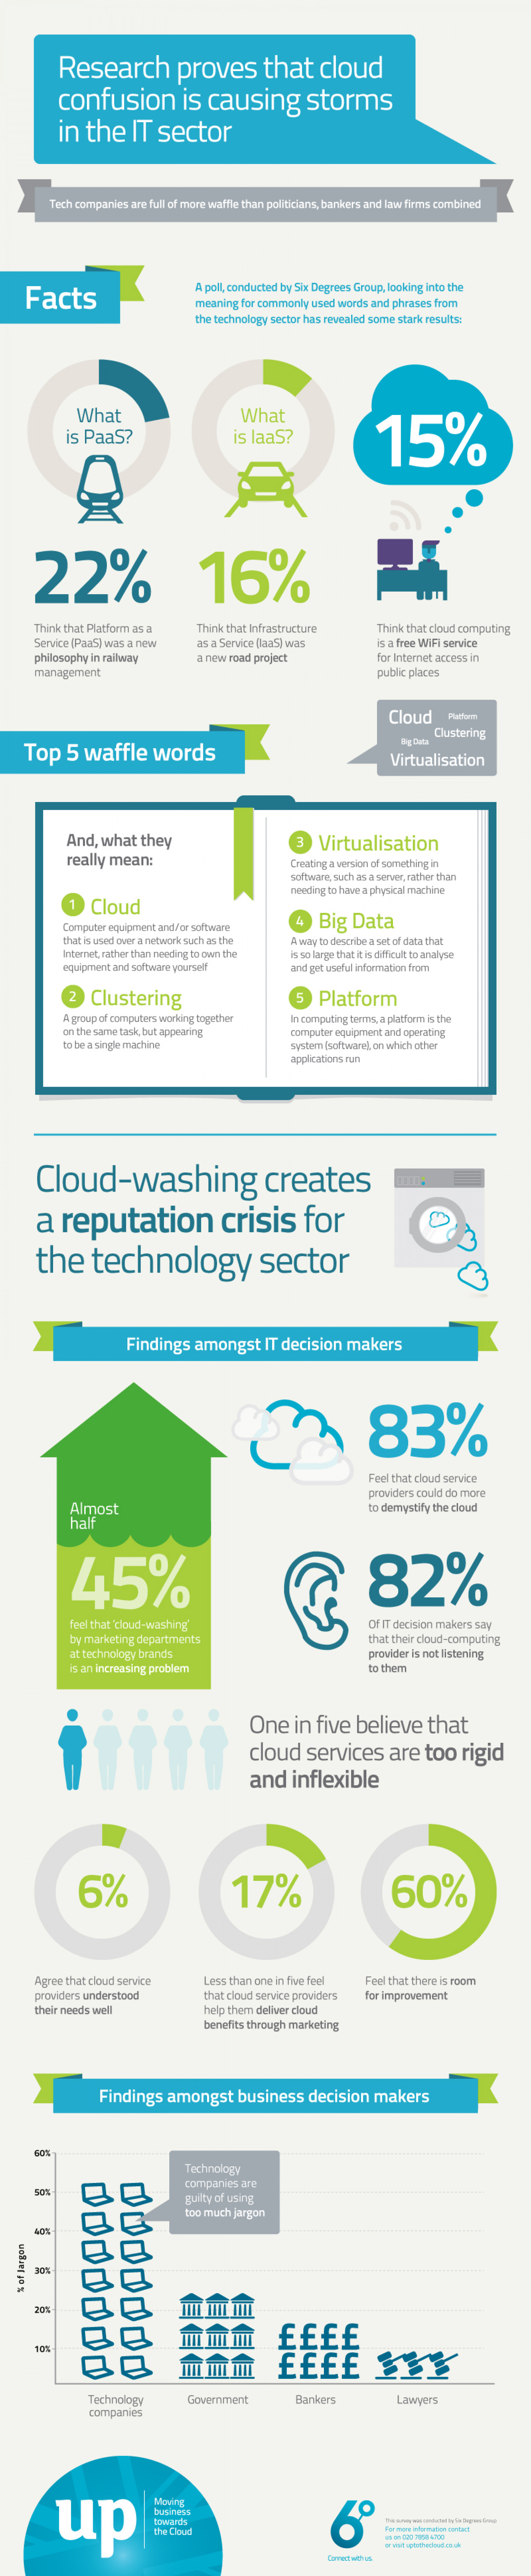 Research Proves That Cloud Confusion is Causing Storms in The IT Sector Infographic